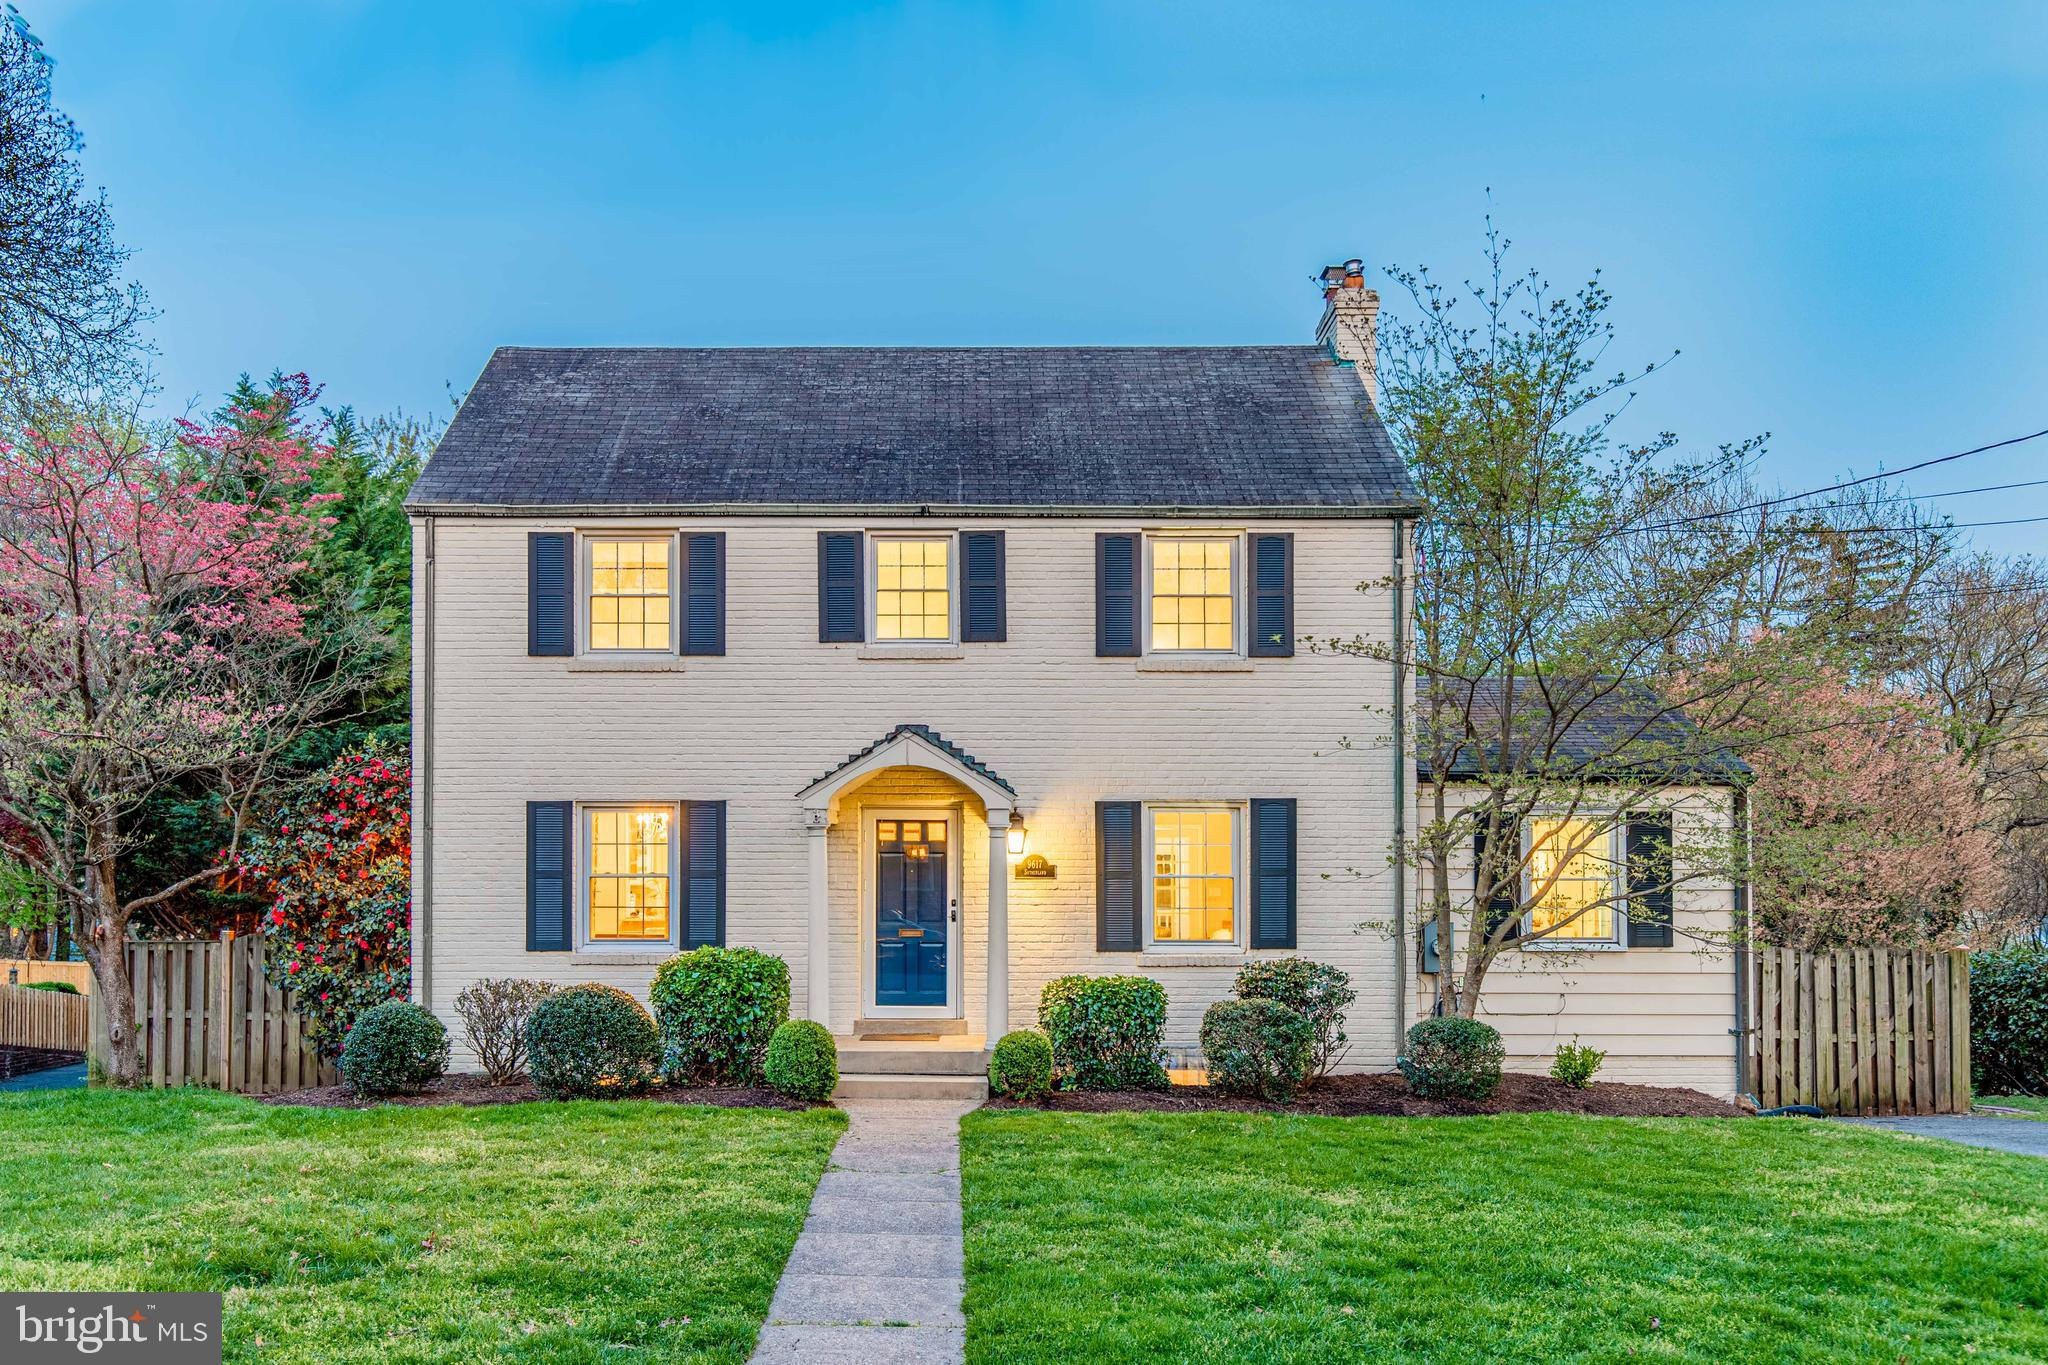 UPDATE ***OFFER DEADLINE IS SET FOR MONDAY, MAY 25TH AT 12PM.  PLEASE REACH OUT TO LISTING AGENTS WITH ANY QUESTIONS*****LIVE VIRTUAL OPEN HOUSE WEBINAR Friday, May 22 @ 5:00pm.  Register on the Virtual Open House Link!!!*****This stately North Hills colonial is ready to WOW! Upon entering, you are greeted by a traditional center hall floor plan. To your left, a stunning open-concept dedicated dining and kitchen area offers handsome cabinetry with glass inserts, stainless steel appliances, hardwood flooring and backyard access. On the right, a spacious family room boasts built-in shelving, a wood-burning fireplace, and access to the palatial screened living space with Brazilian hardwood decking that opens onto a large deck with hard piped gas line perfect for grilling.  A sun filled bedroom or possible home office rounds out the impressive main level. Upstairs, three generous bedrooms with plenty of closet space, hardwood flooring, on-trend paint palette, join a modern full bath. In the finished lower level, additional recreational space with built-in shelving, storage space and also includes easy access plumbing to add a full bath. The idyllic yard includes a fully fenced backyard with level green space, playset and playhouse and a driveway with a private one-car garage. Enjoy walks to Sligo Creek Park, quick Metro and bus access plus a short drive to I-495 in this conveniently located home!